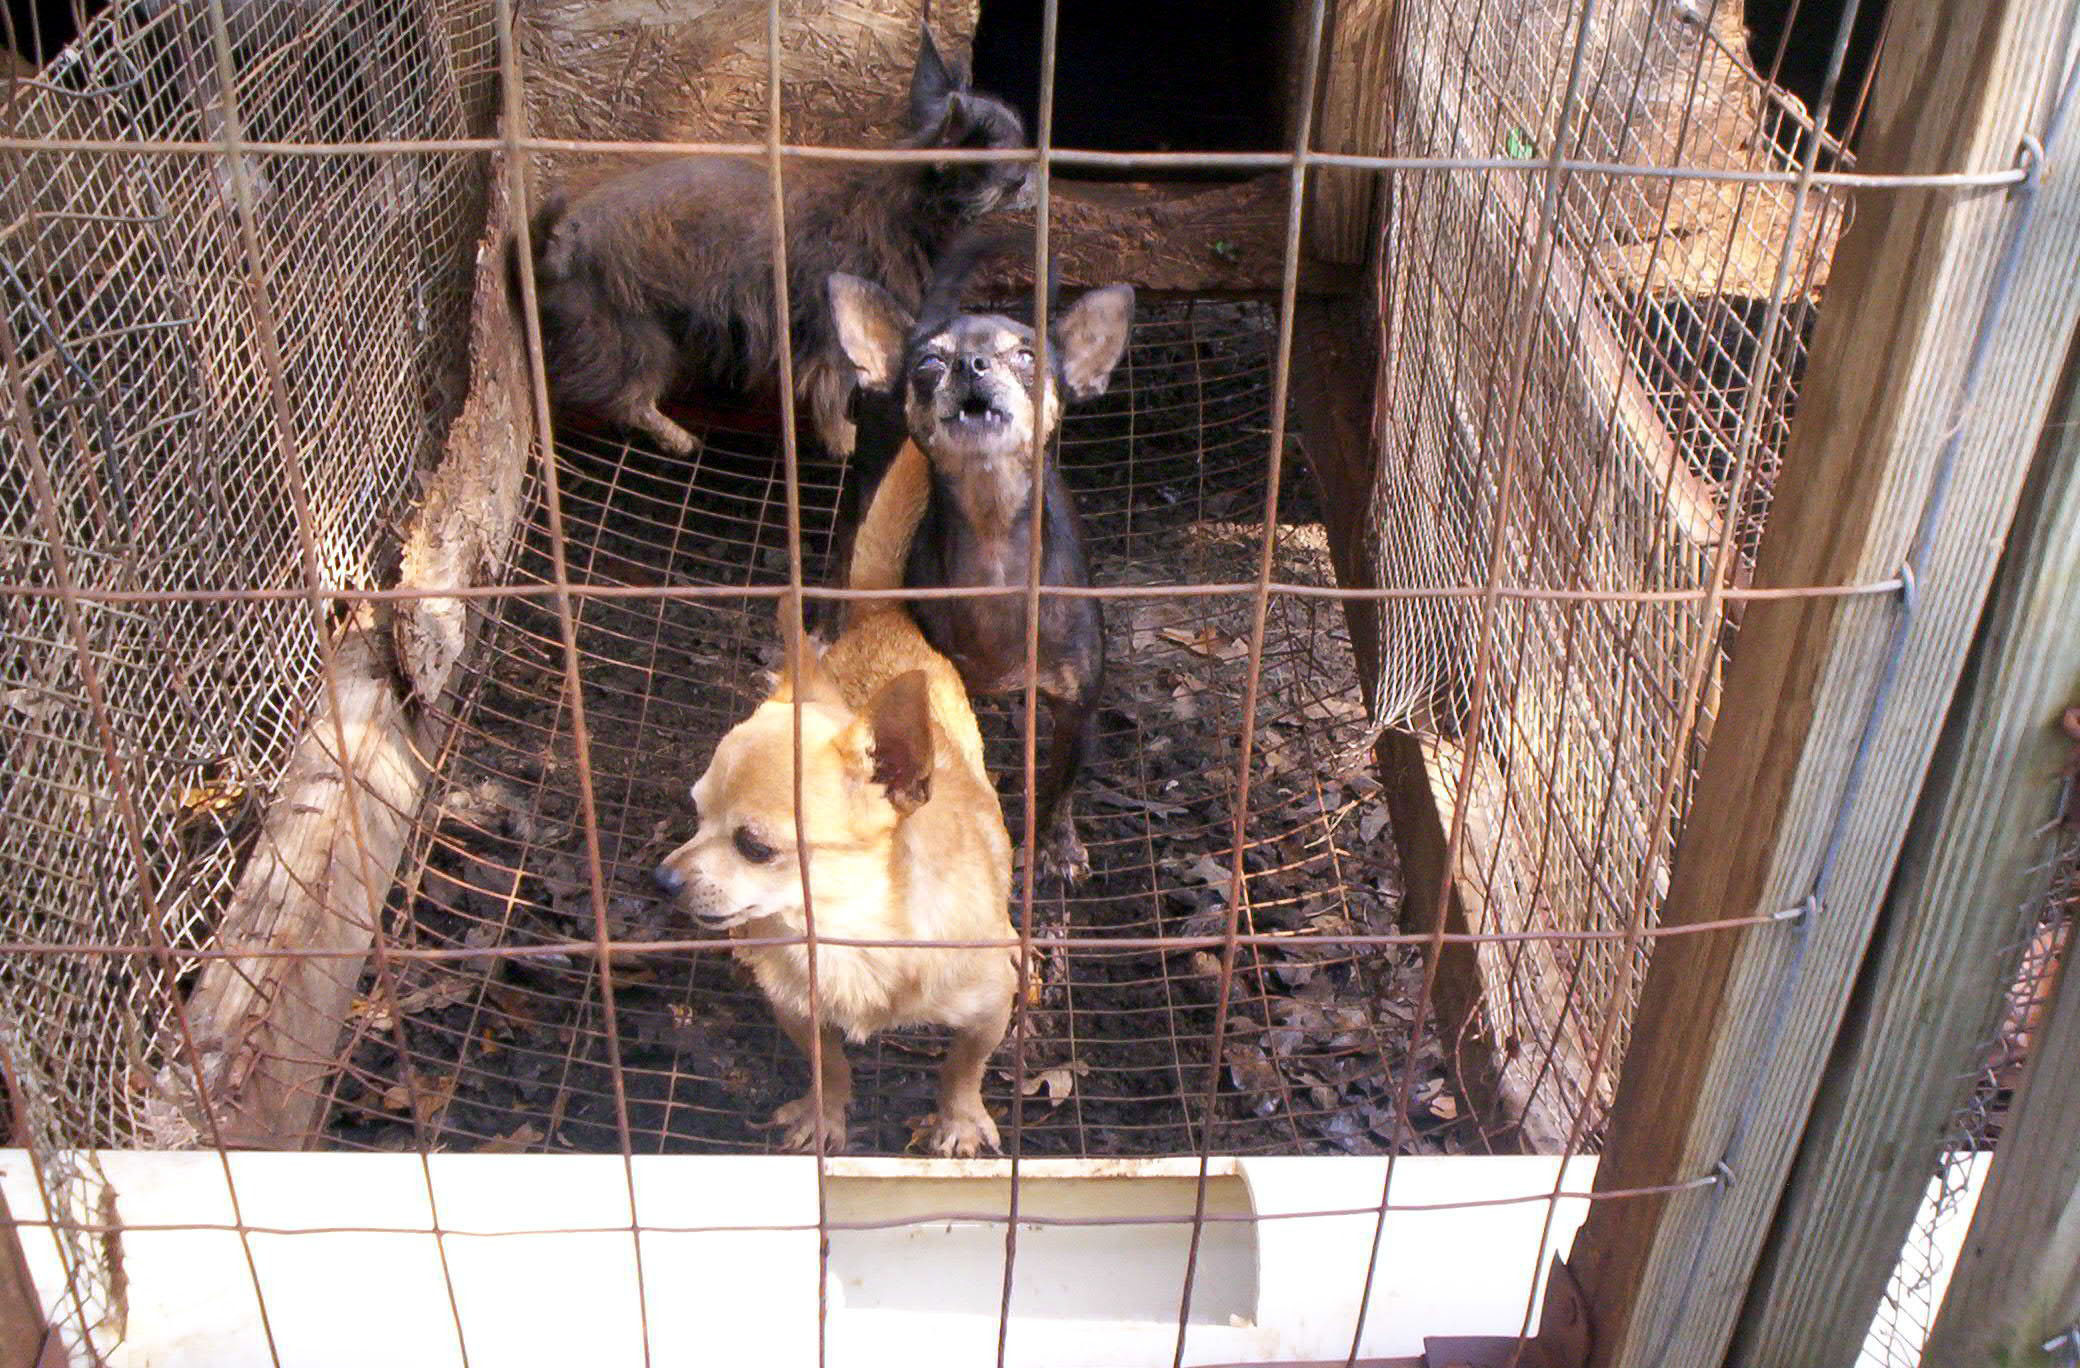 against puppy mills images stop puppy mills hd